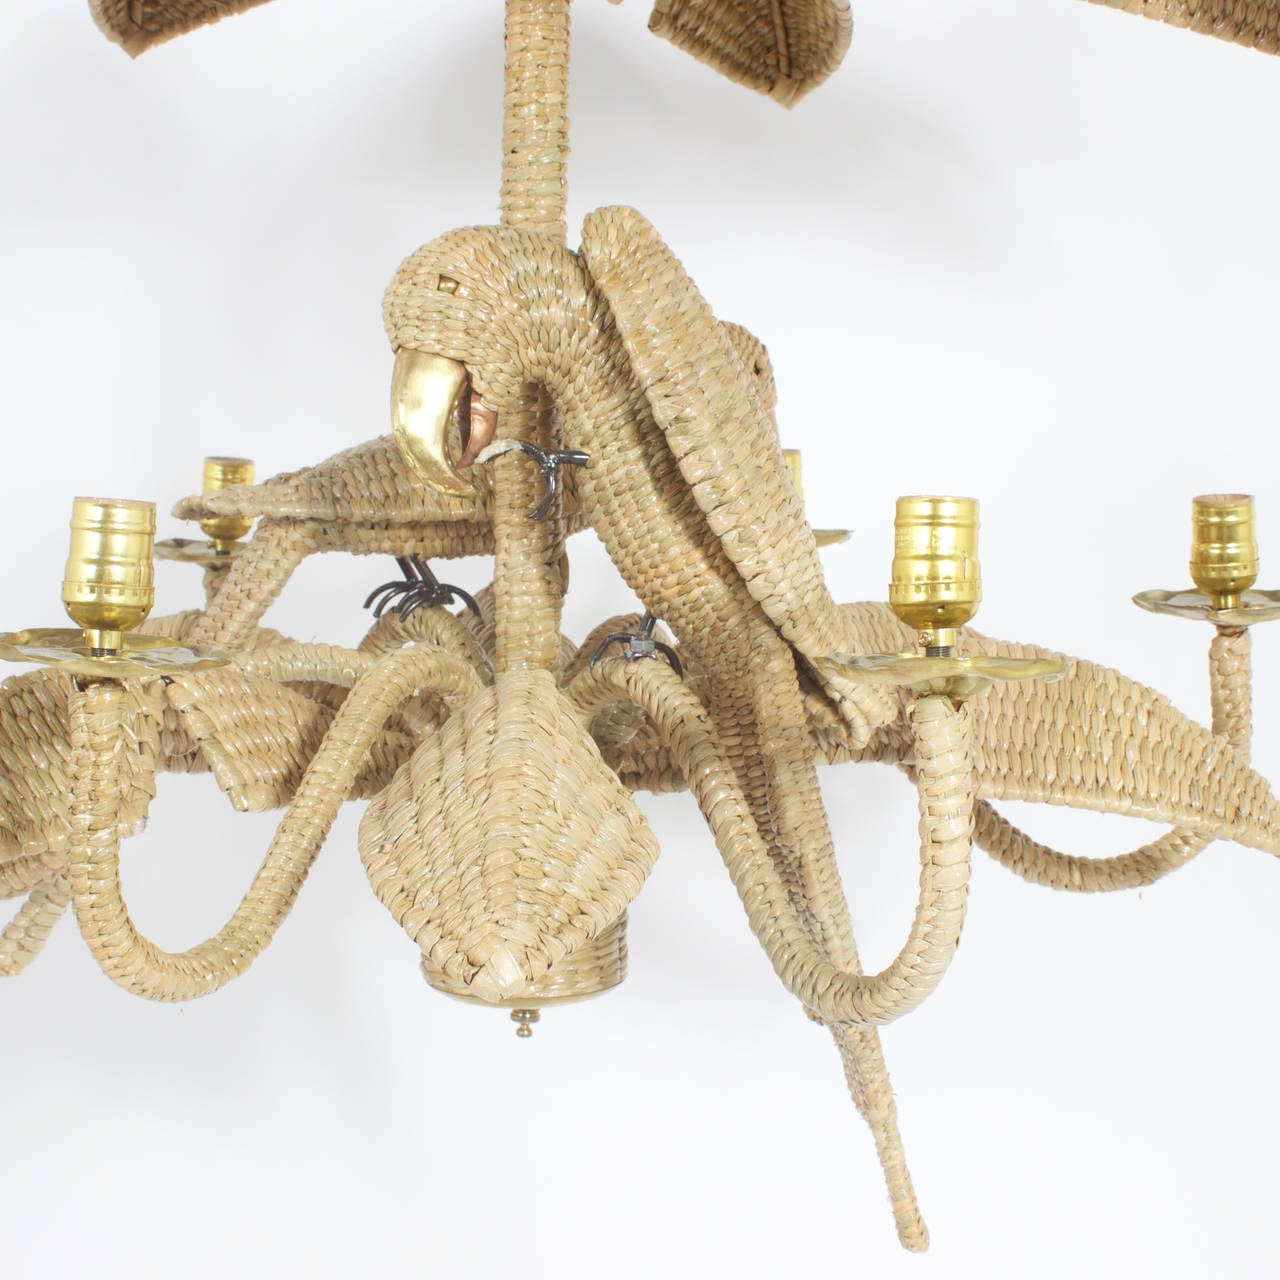 Mario Torres Mid Century 6 light chandelier constructed of an iron frame wrapped with wicker or reed in an intricate tight weave. Featuring 2 busy and playful parrots with brass and copper beaks surrounded by 2 layers of palm fronds creating a fun